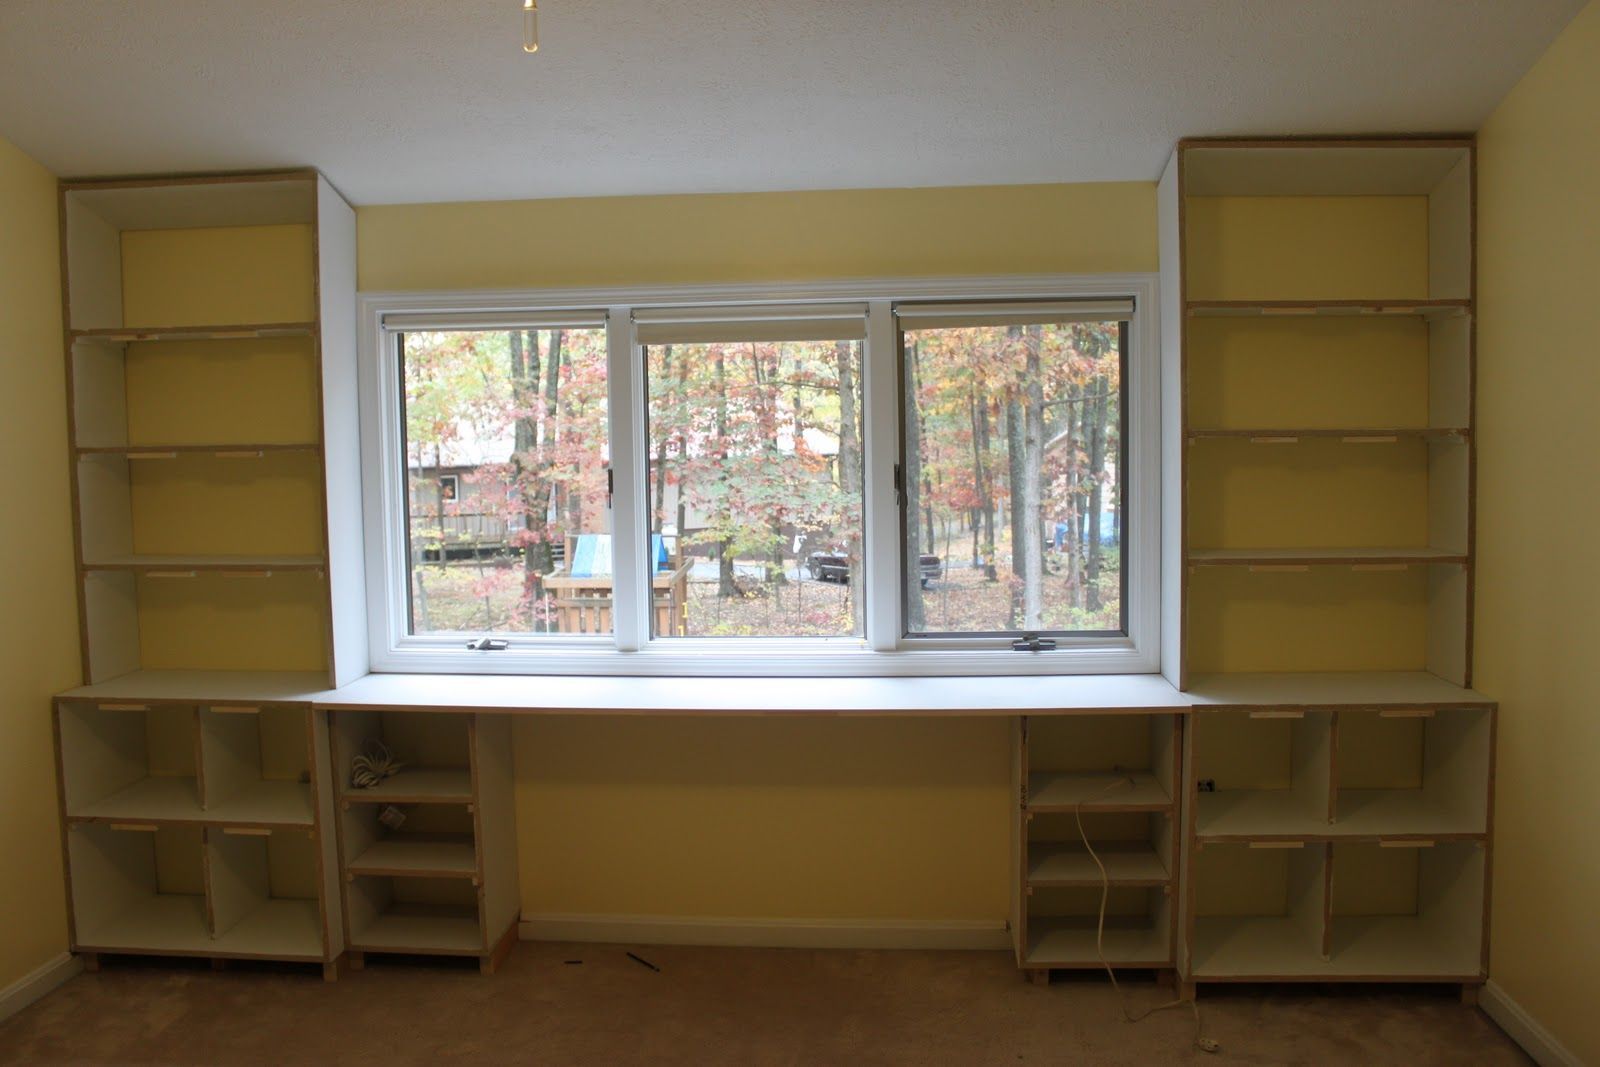 Amazing Built In Bookcase Good Looking Base Cabinet Without Bat Desk Expedit